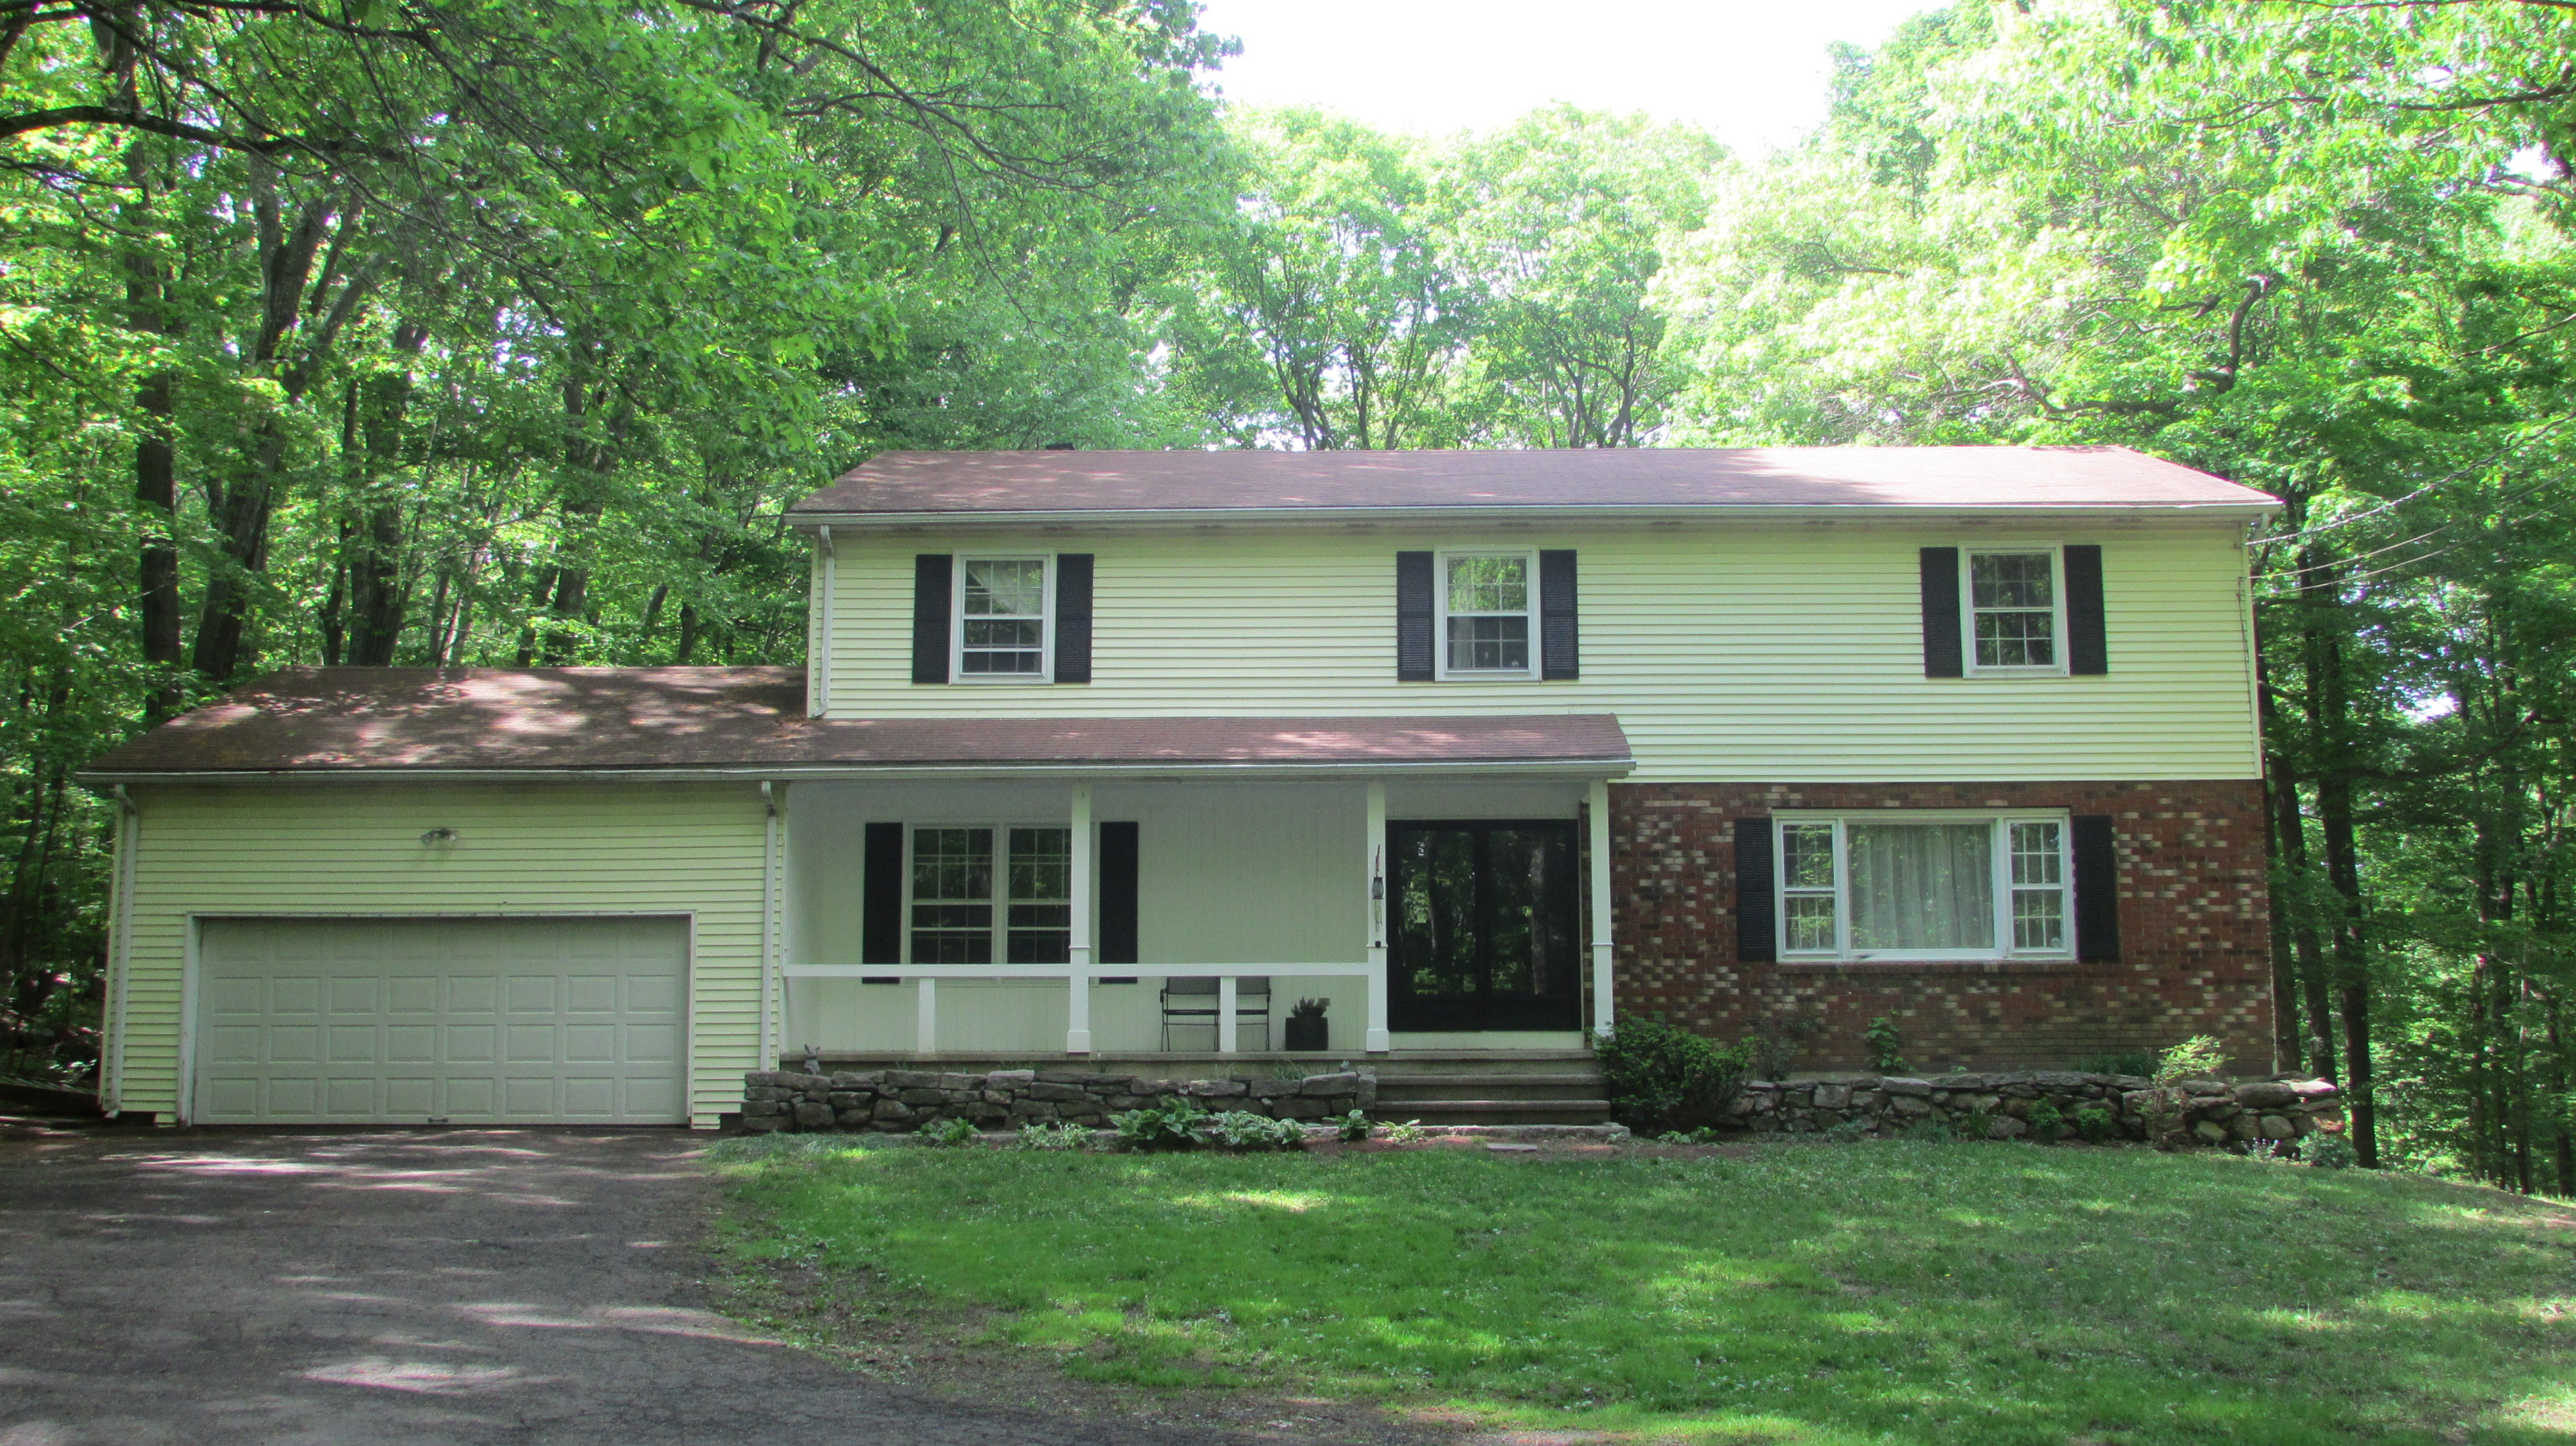 Single Family Home for Sale at Tranquil Retreat 9 King Street Danbury, Connecticut 06811 United States